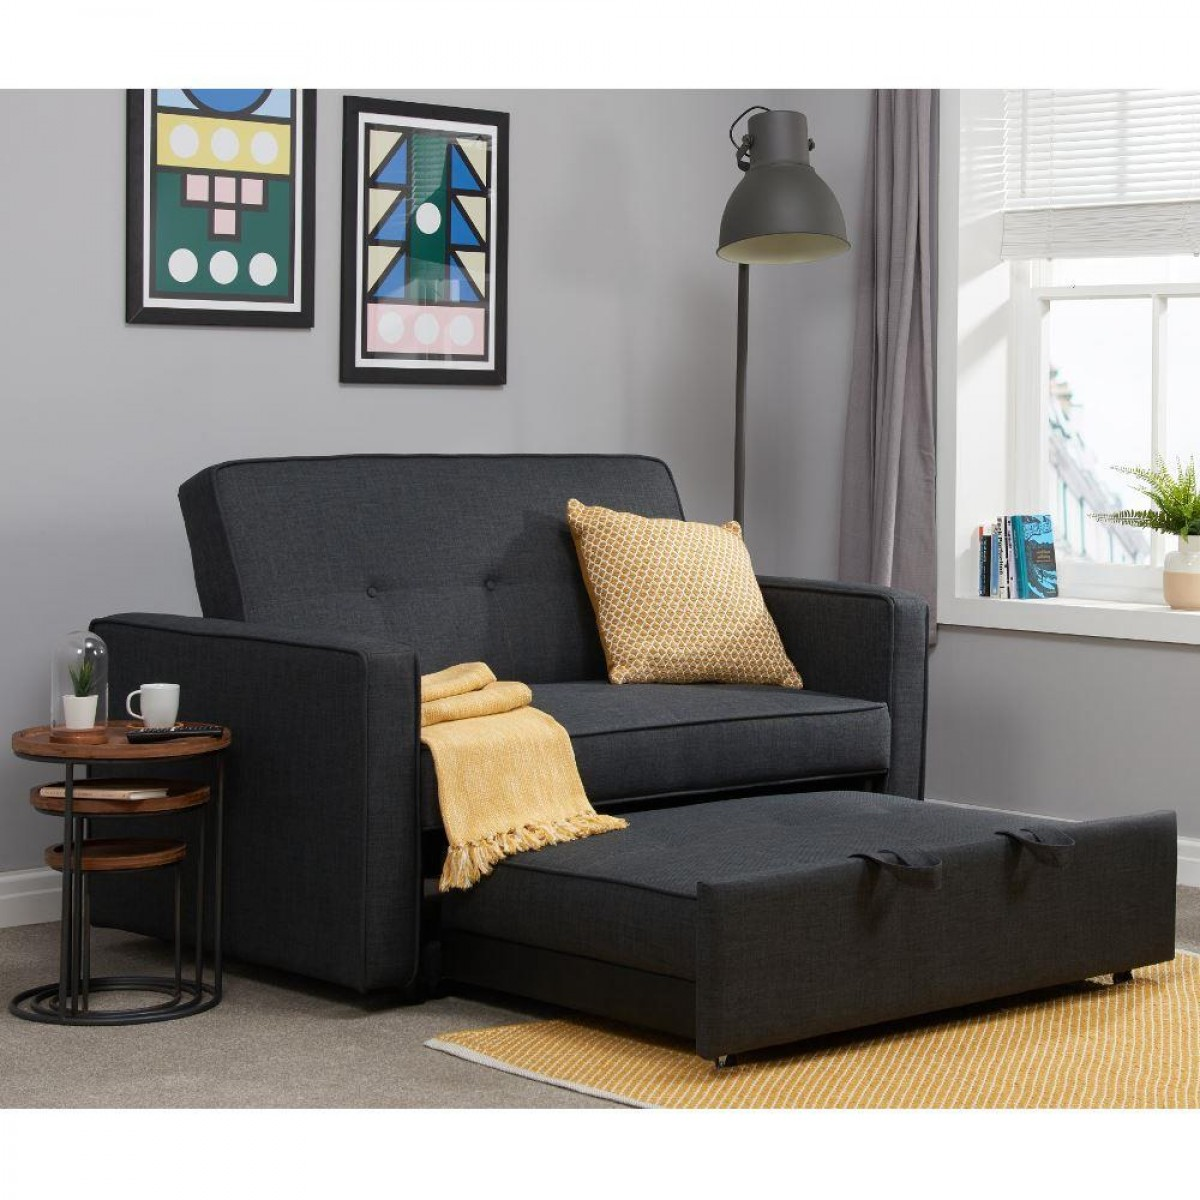 Otto Grey Fabric Sofa Bed